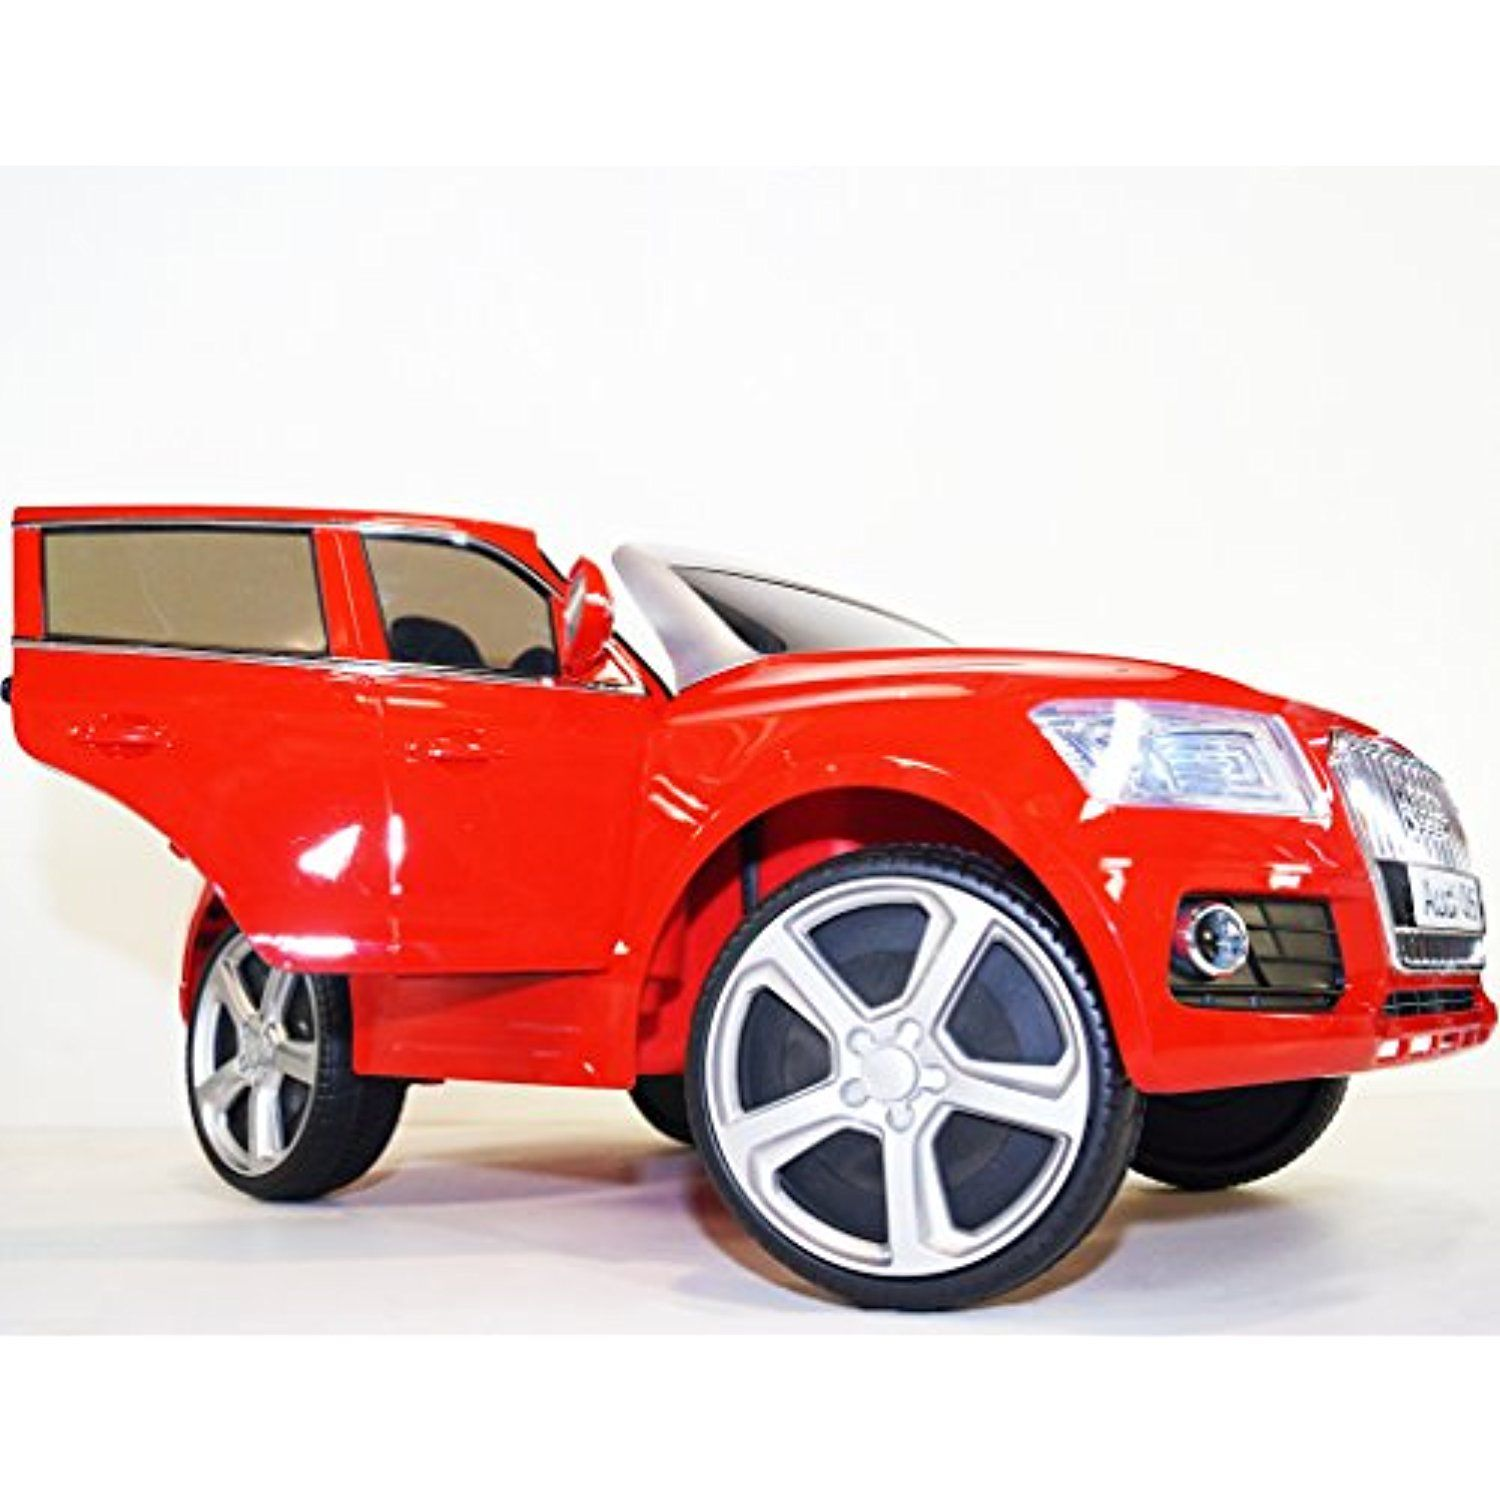 Ride On Car Audi Q5 Style 2 Seater 2 Speed Electric Car With Remote Control Battery Operated Two Motors Total 12v Electric C Tricycle Riding Toys Seater